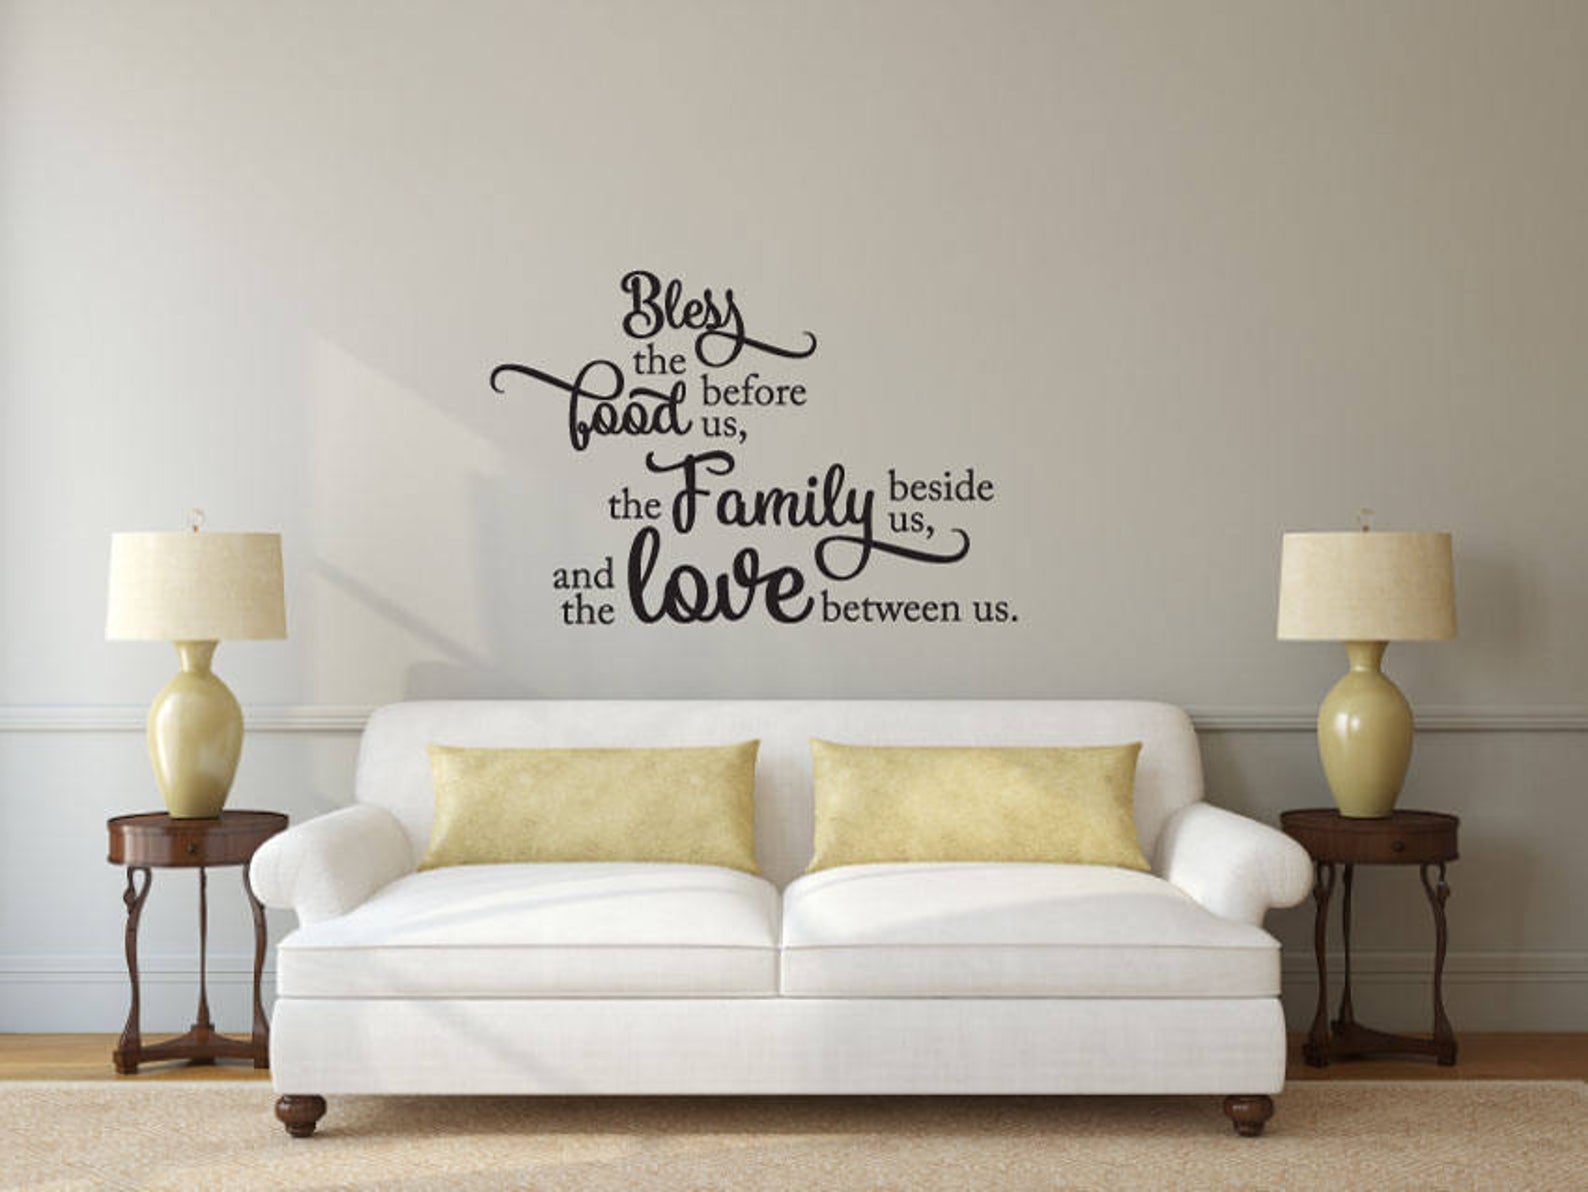 Bless the Food - Vinyl Decal Wall Art Decor Sticker - Home Decor House Living Area House Warming Welcome Family